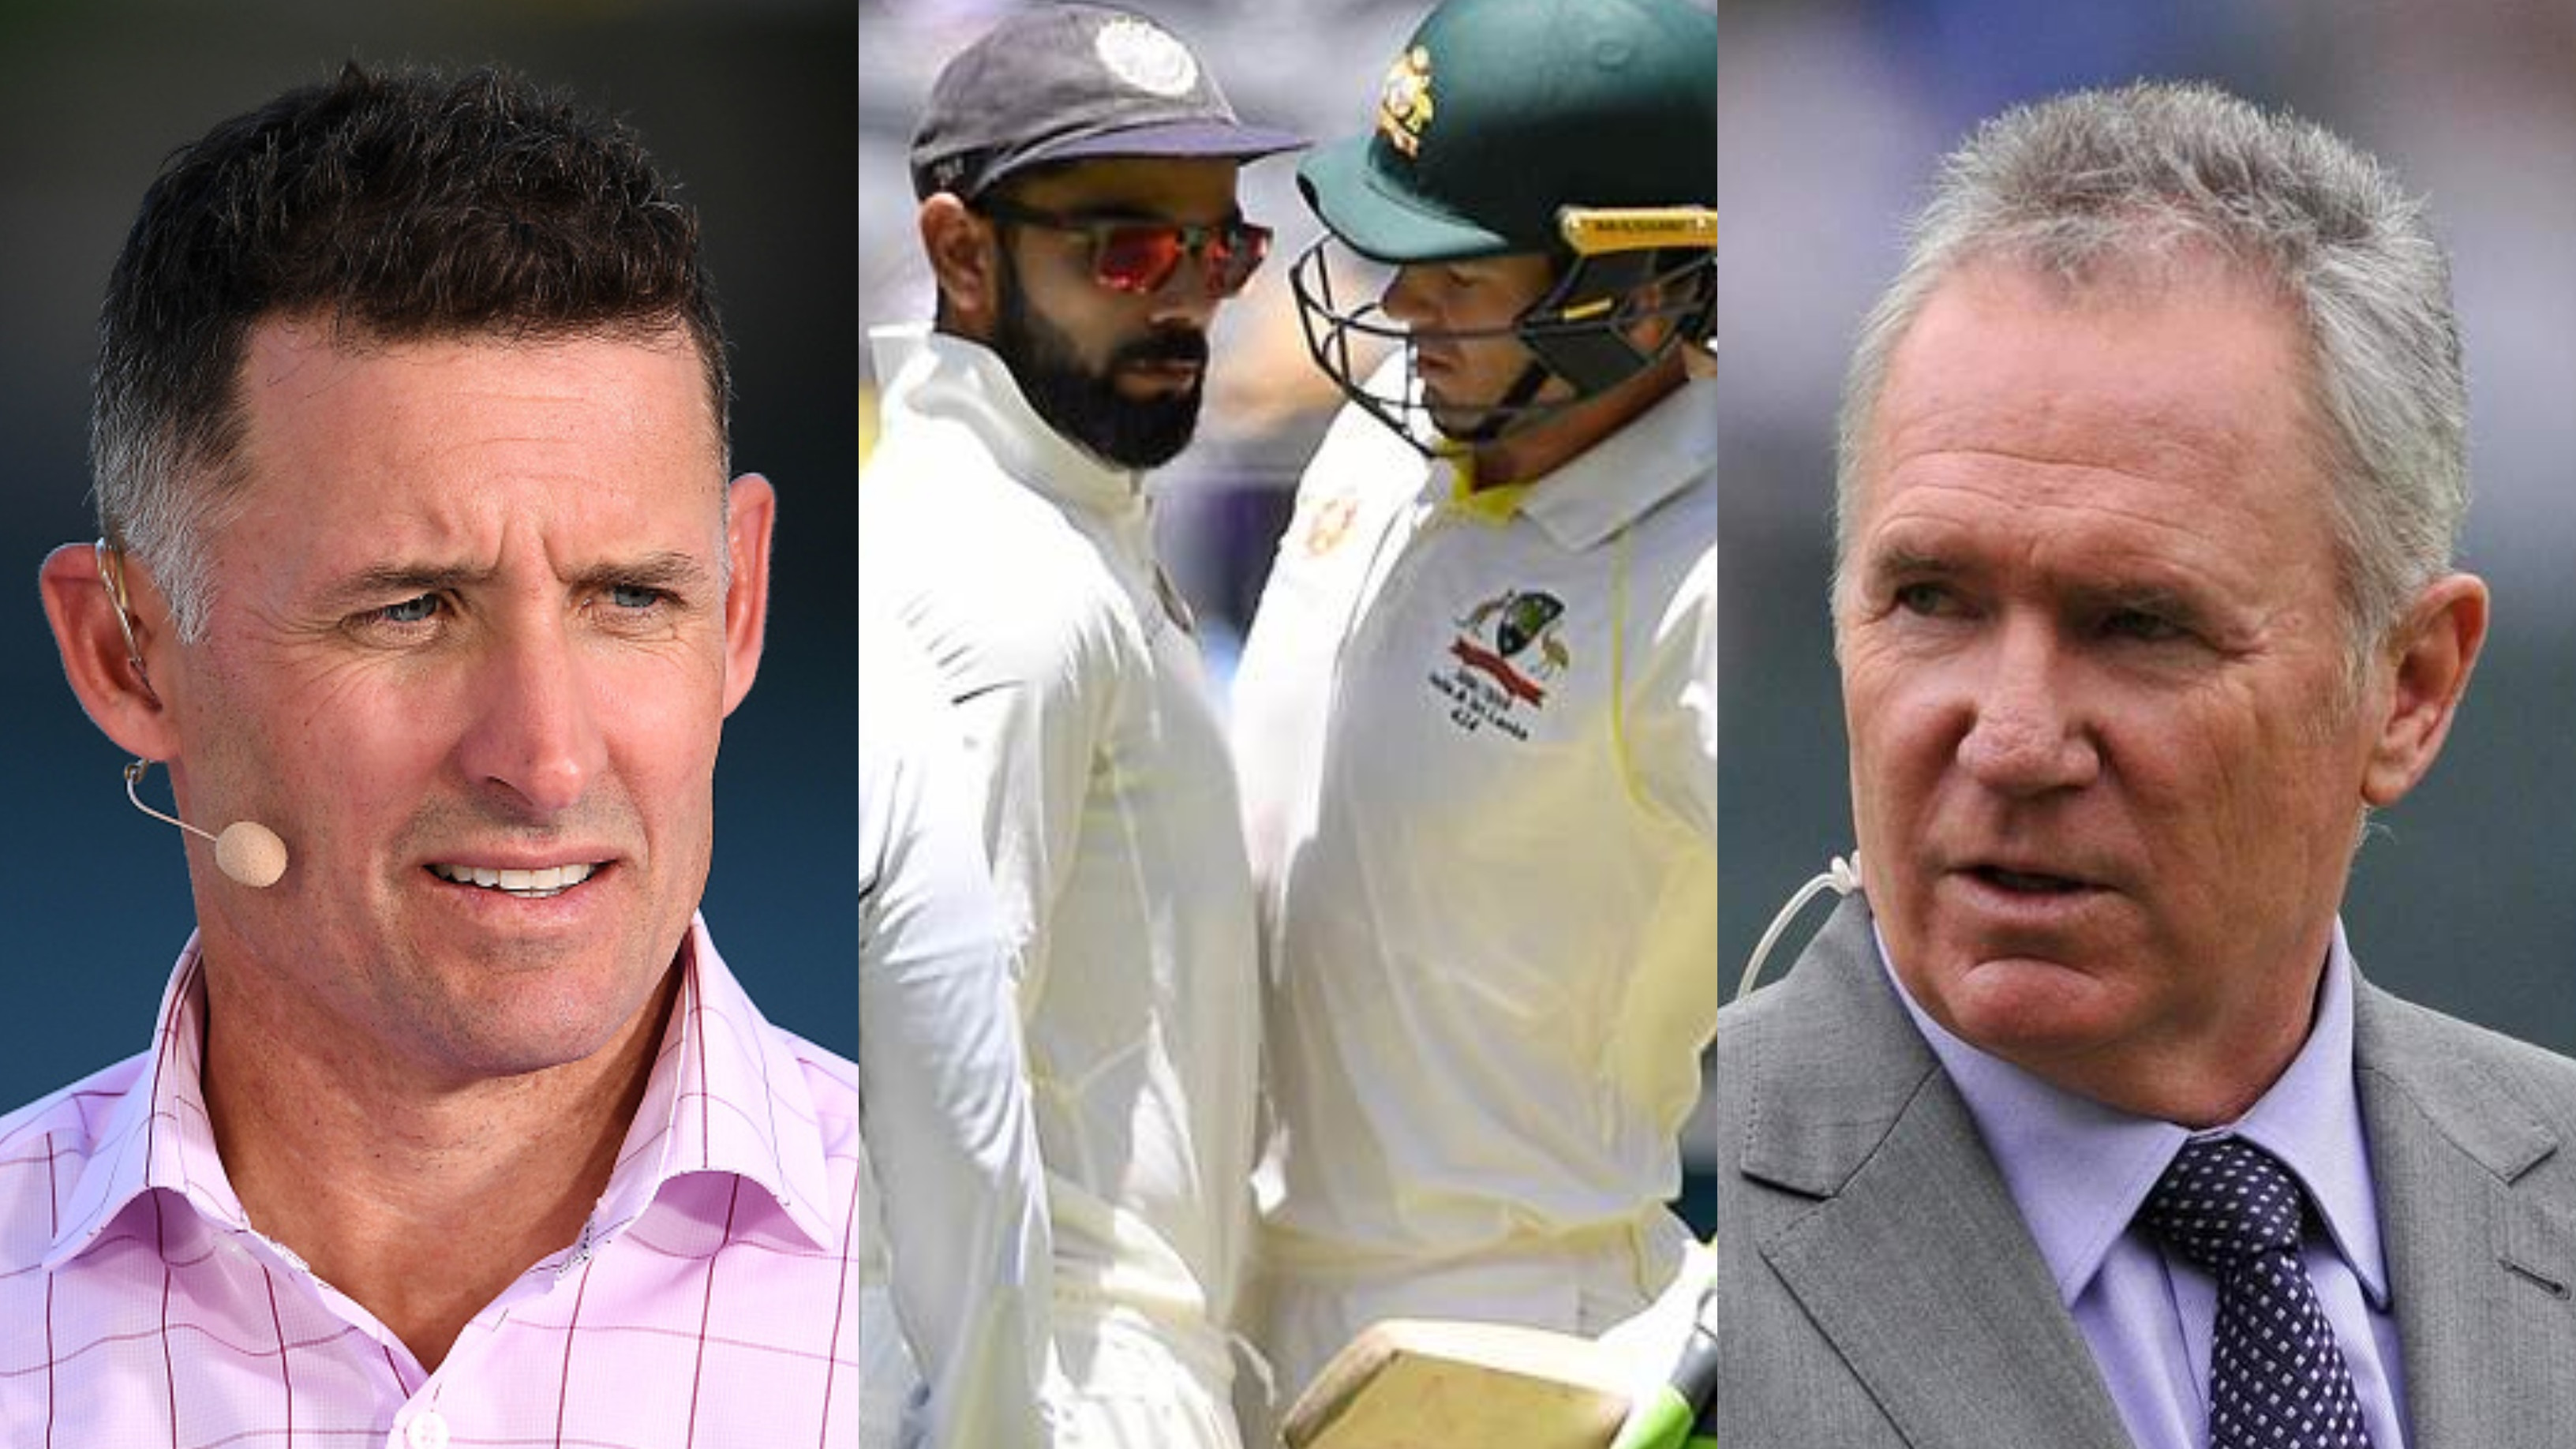 AUS v IND 2018-19: Michael Hussey, Allan Border criticise Virat Kohli's on-field antics in Perth